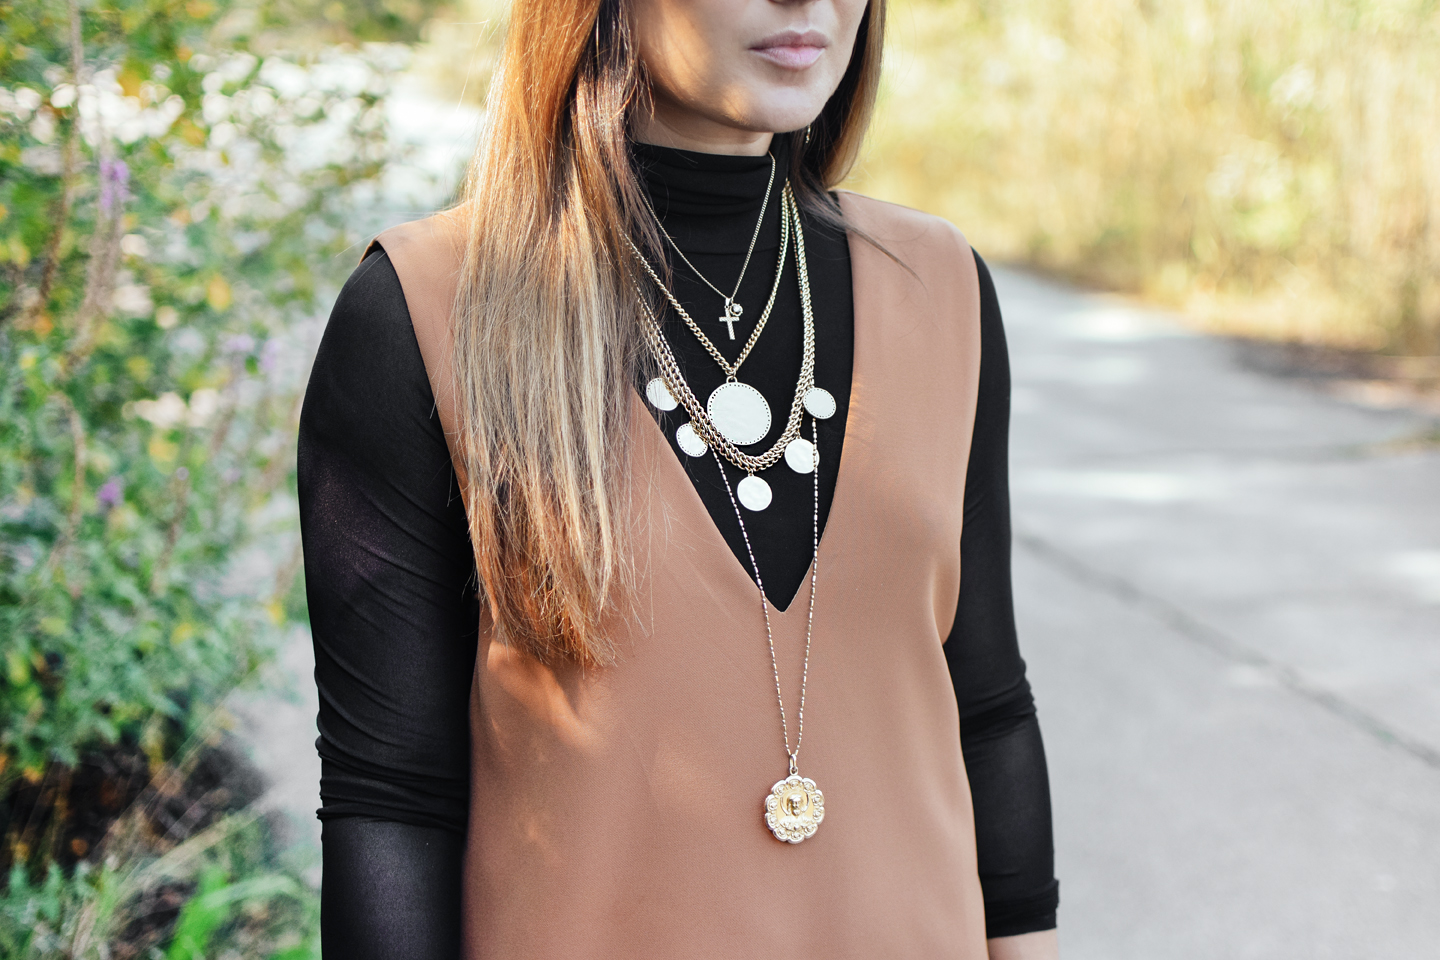 layered-gold-necklaces-chic-trendy-style